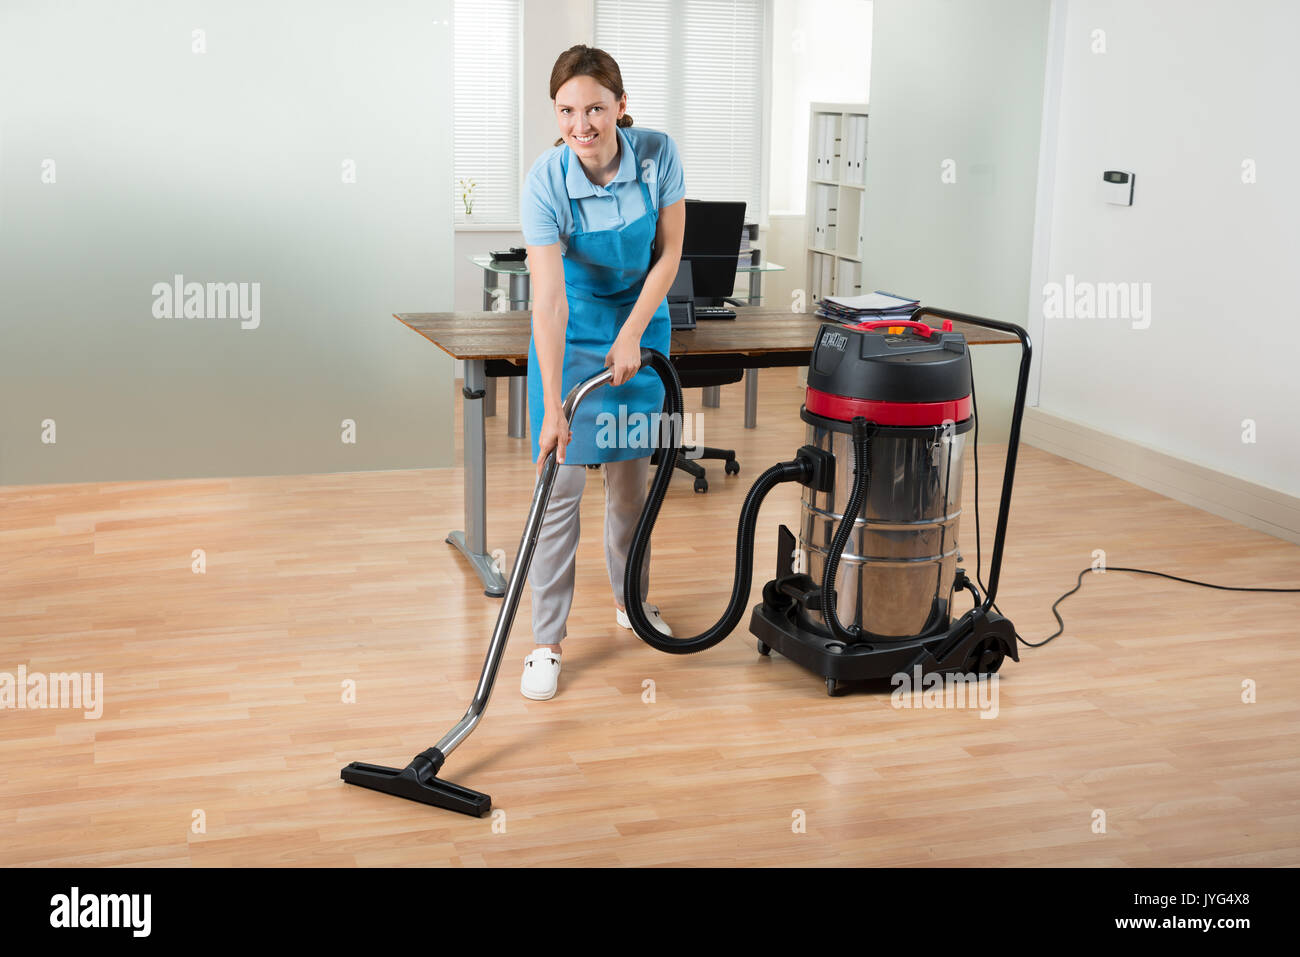 baby chair roomba modern bean bag chairs canada vacuum cleaner stock photos and images